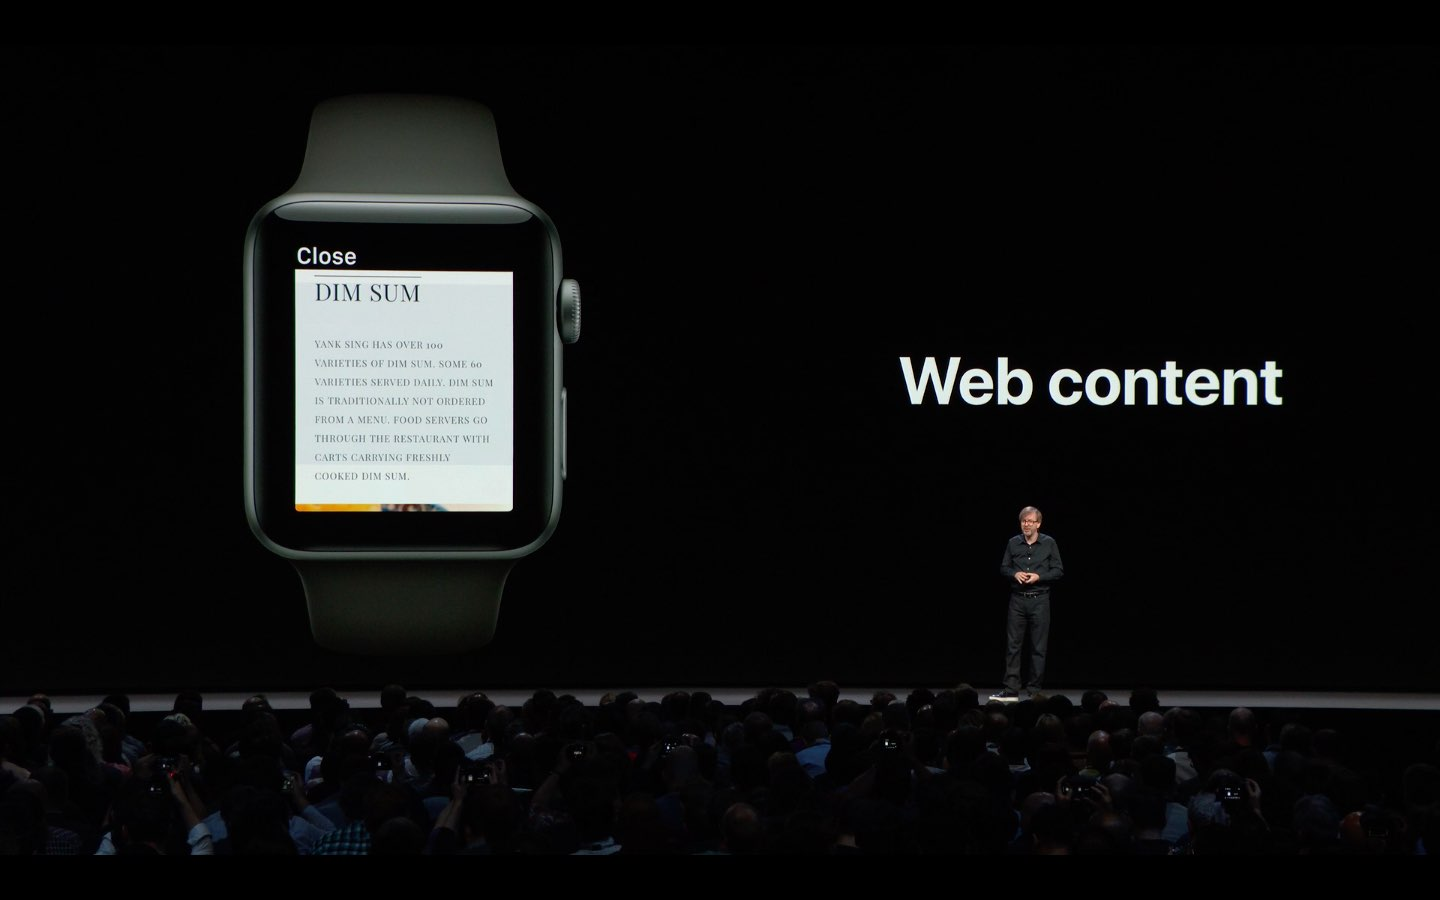 watchOS lead Kevin Lynch announces the WebKit rendering engine is coming to Apple Watch Series 3 and later